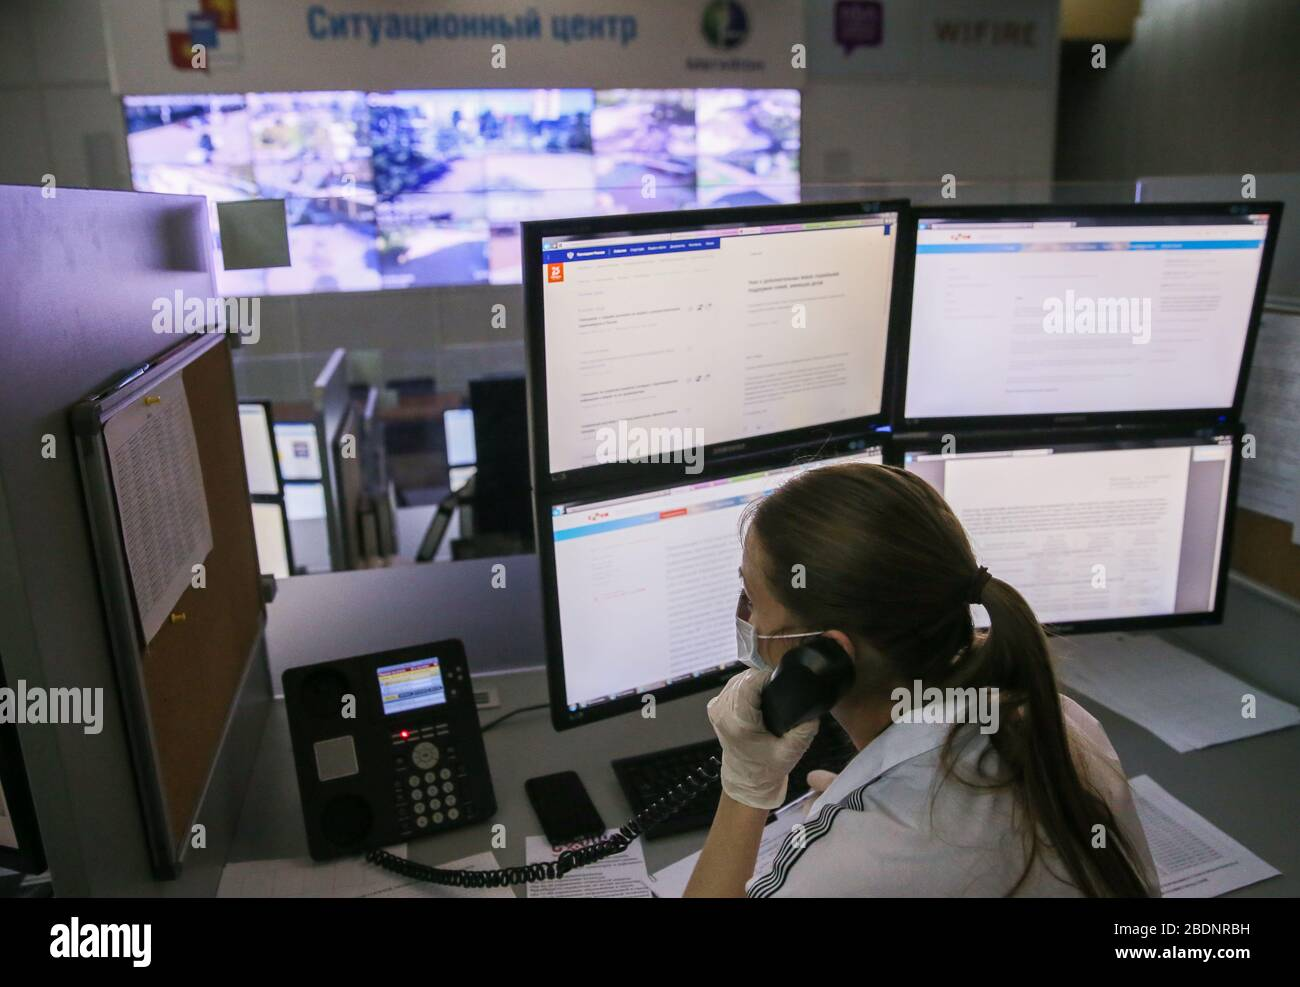 Sochi Russia April 9 2020 An Operator Speaking On A Phone At A Public Safety Answering Point On The Covid 19 Pandemic Dmitry Feoktistov Tass Stock Photo Alamy